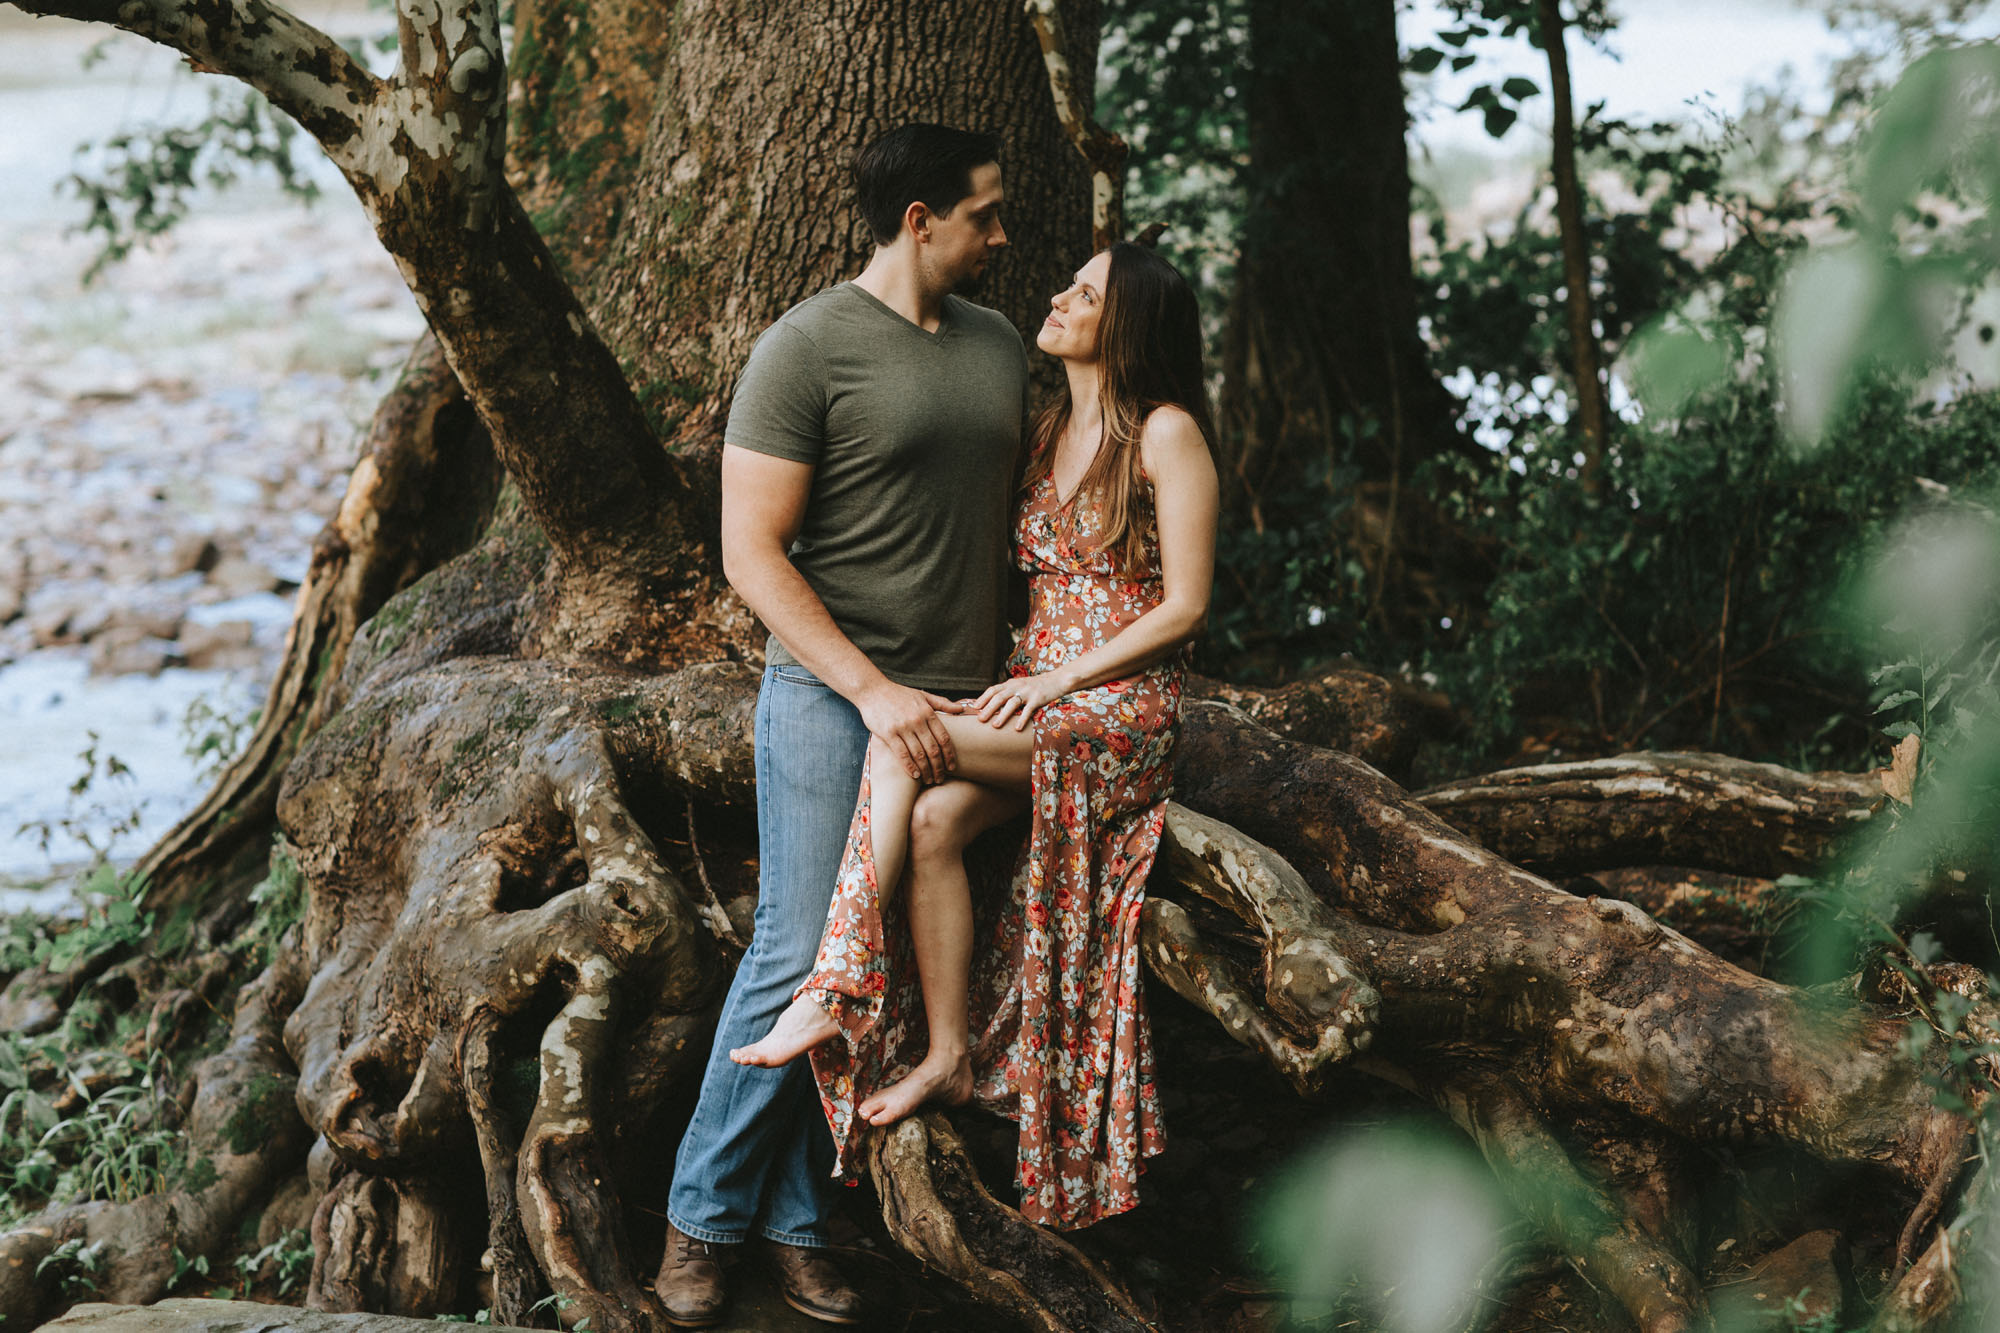 Twisted-Oaks-Studio-Tyler-Park-Engagement-9729.jpg